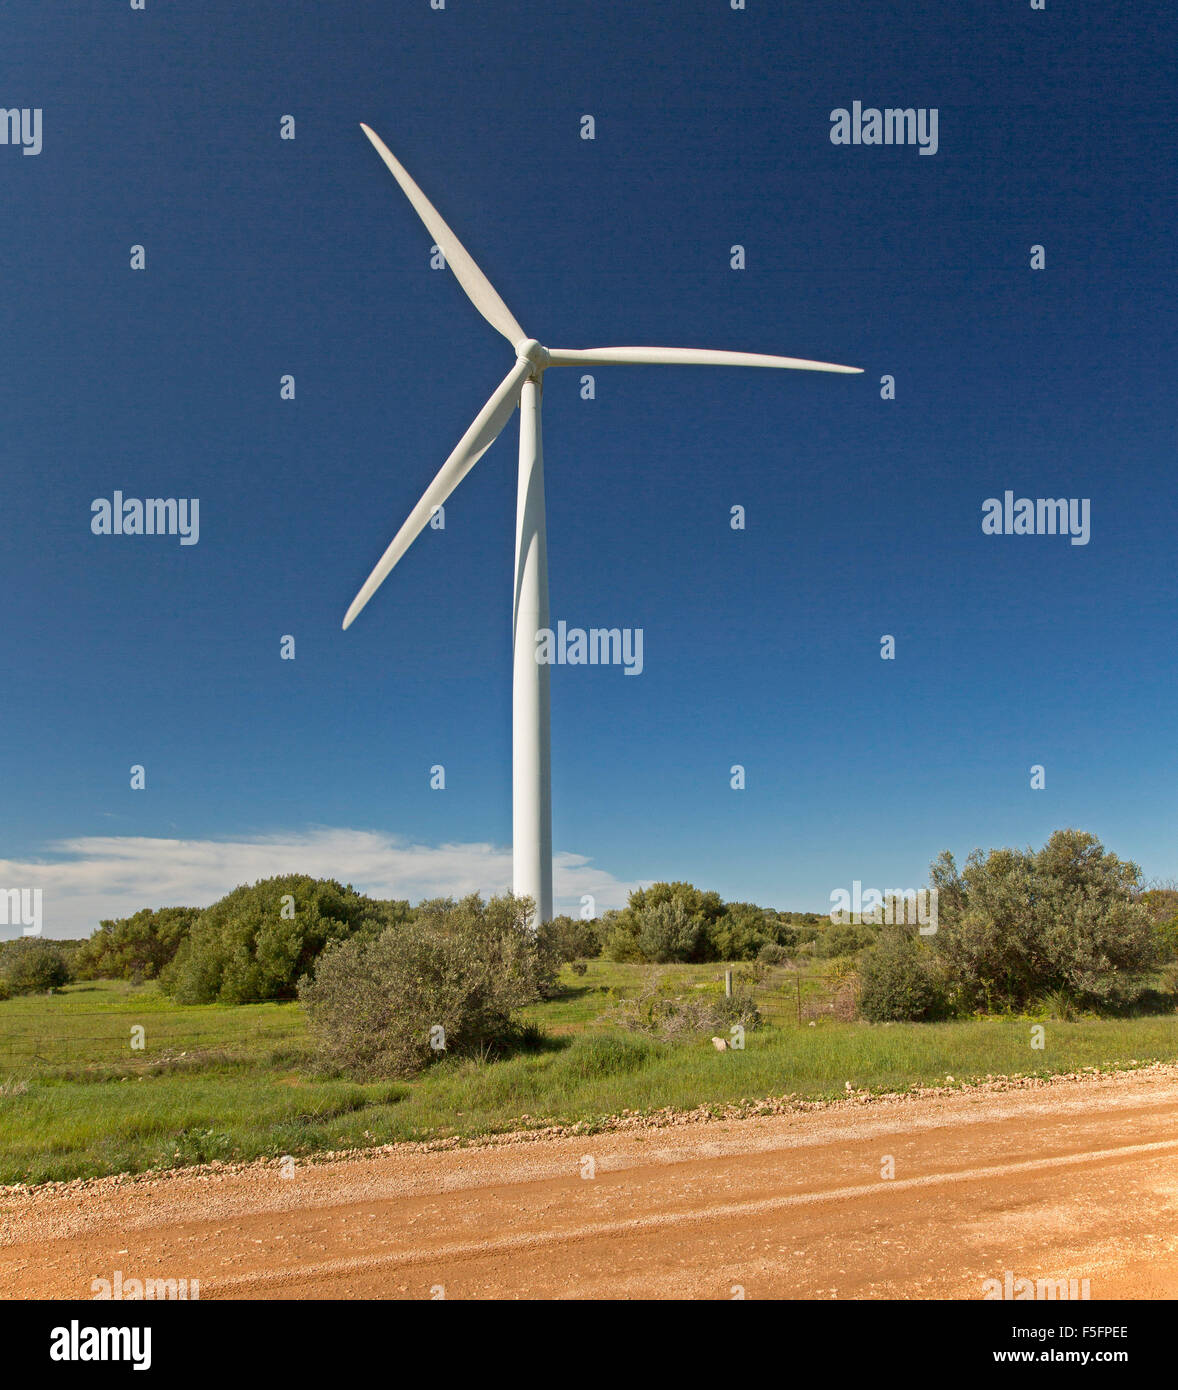 Wind turbine rising among native vegetation beside road into blue sky at Wattle Point wind farm on Yorke Peninsula - Stock Image